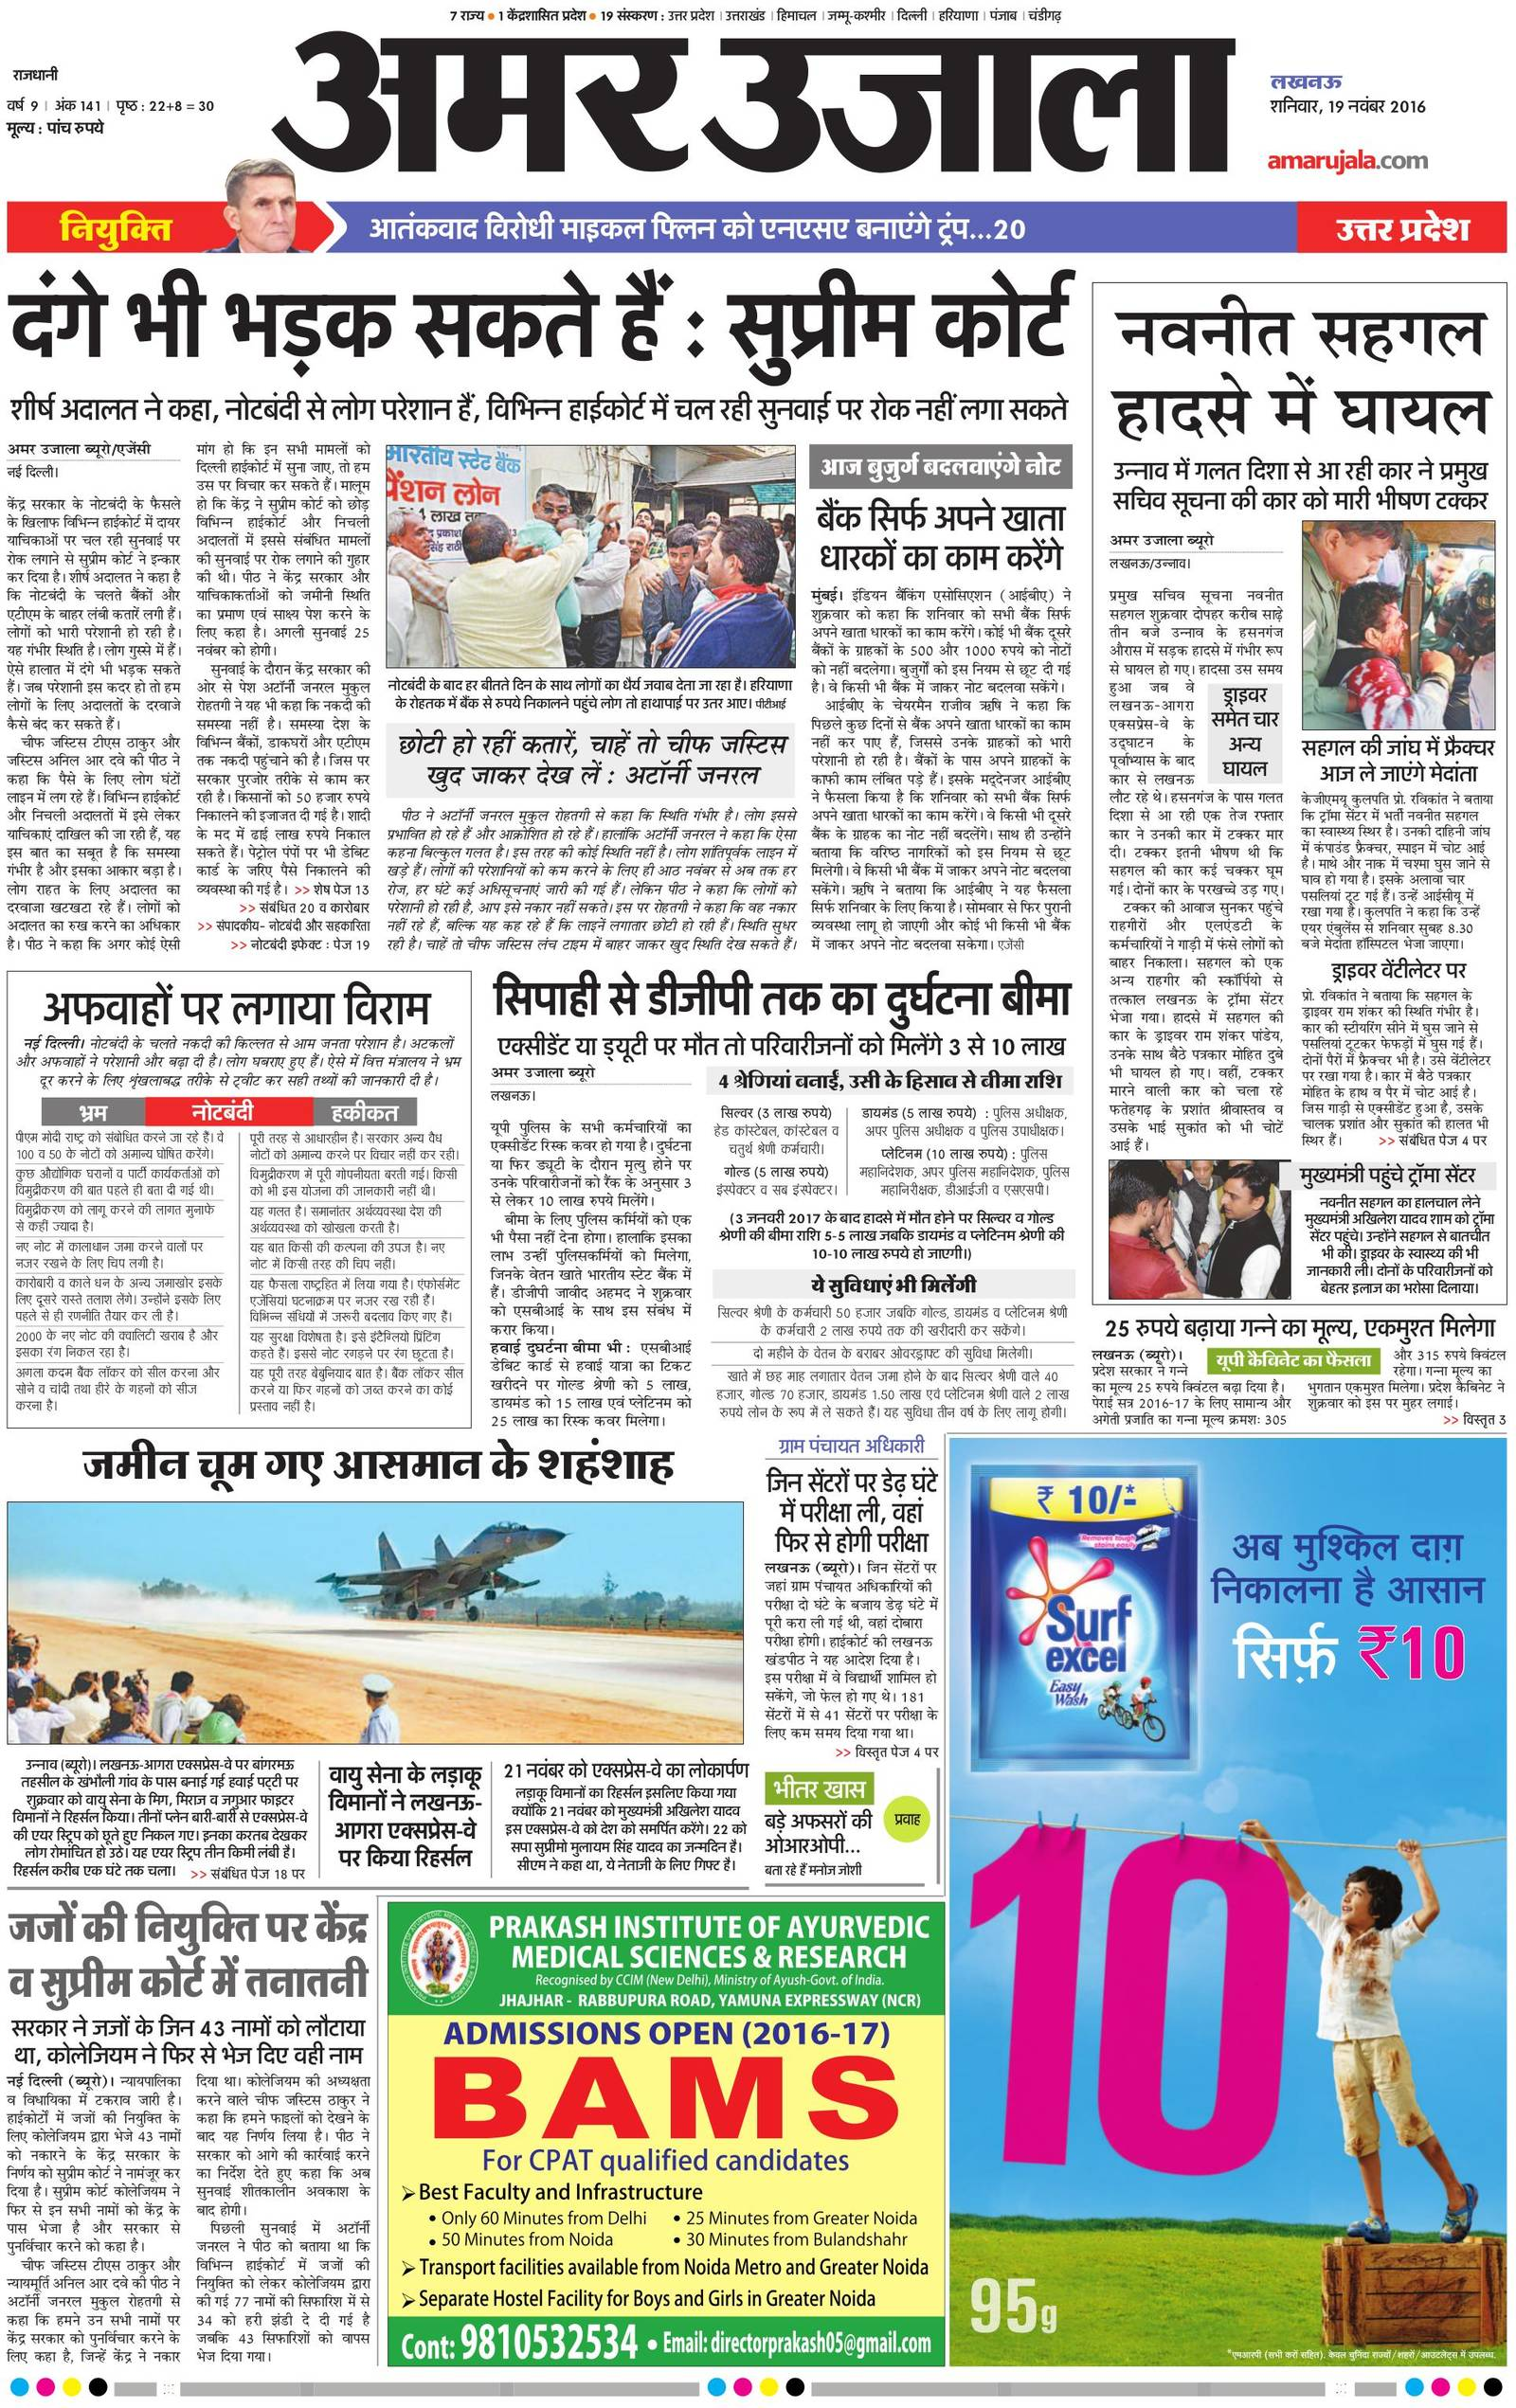 Government news today in hindi up amar ujala lucknow